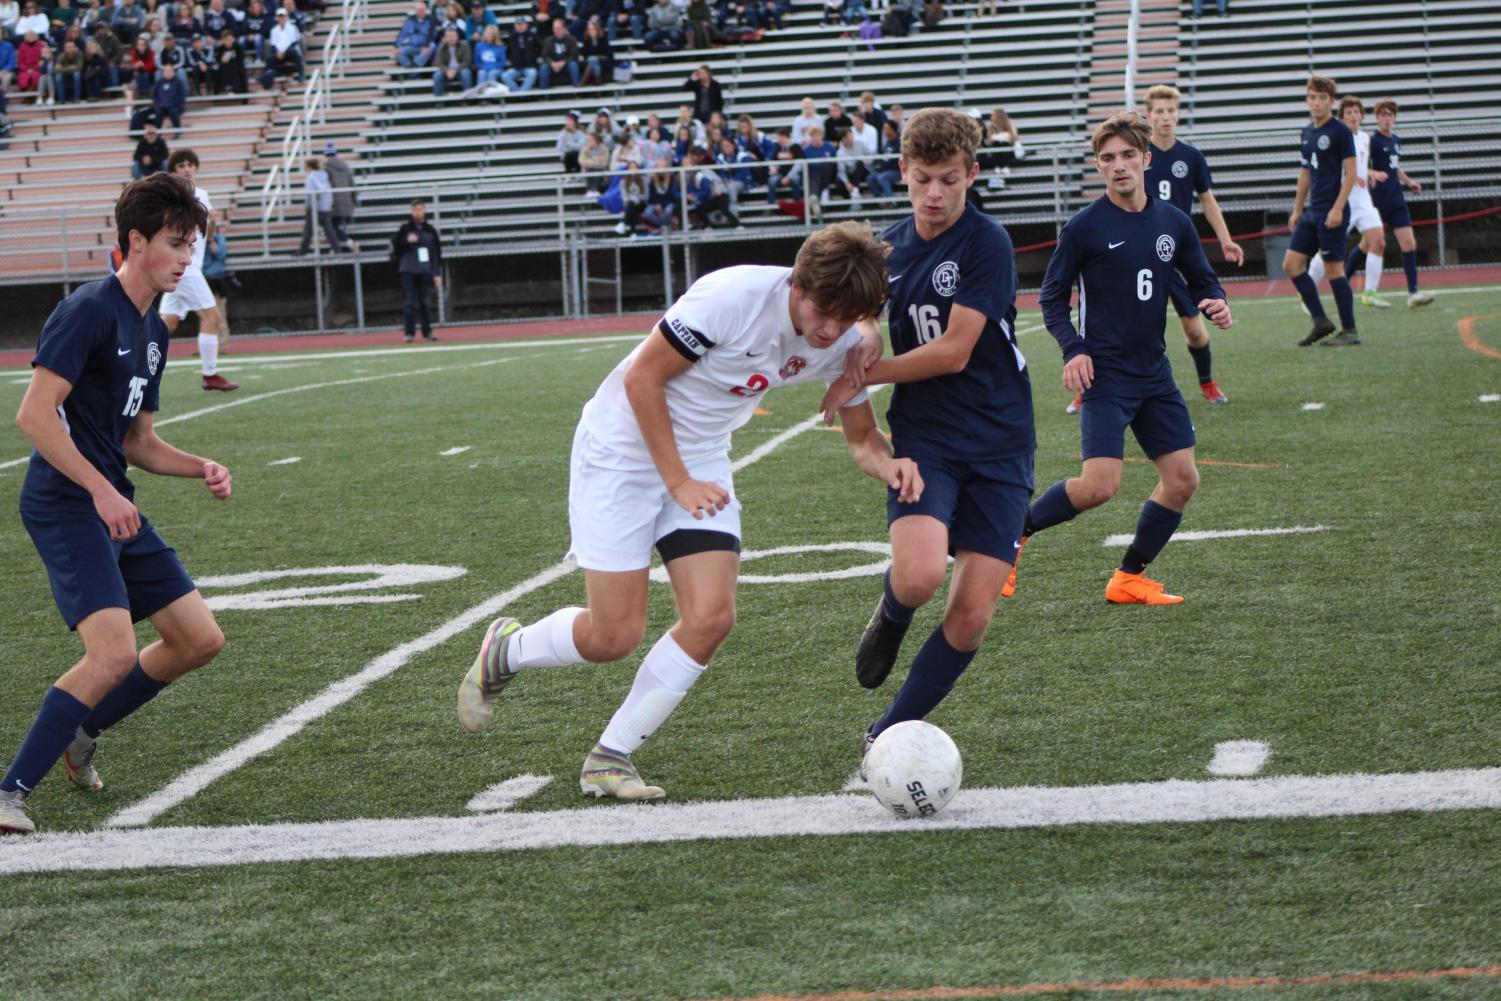 Senior captain Greyson Murray dribbles the ball down the field passing the Wildcat defender.  Photo by Ava Holloway.